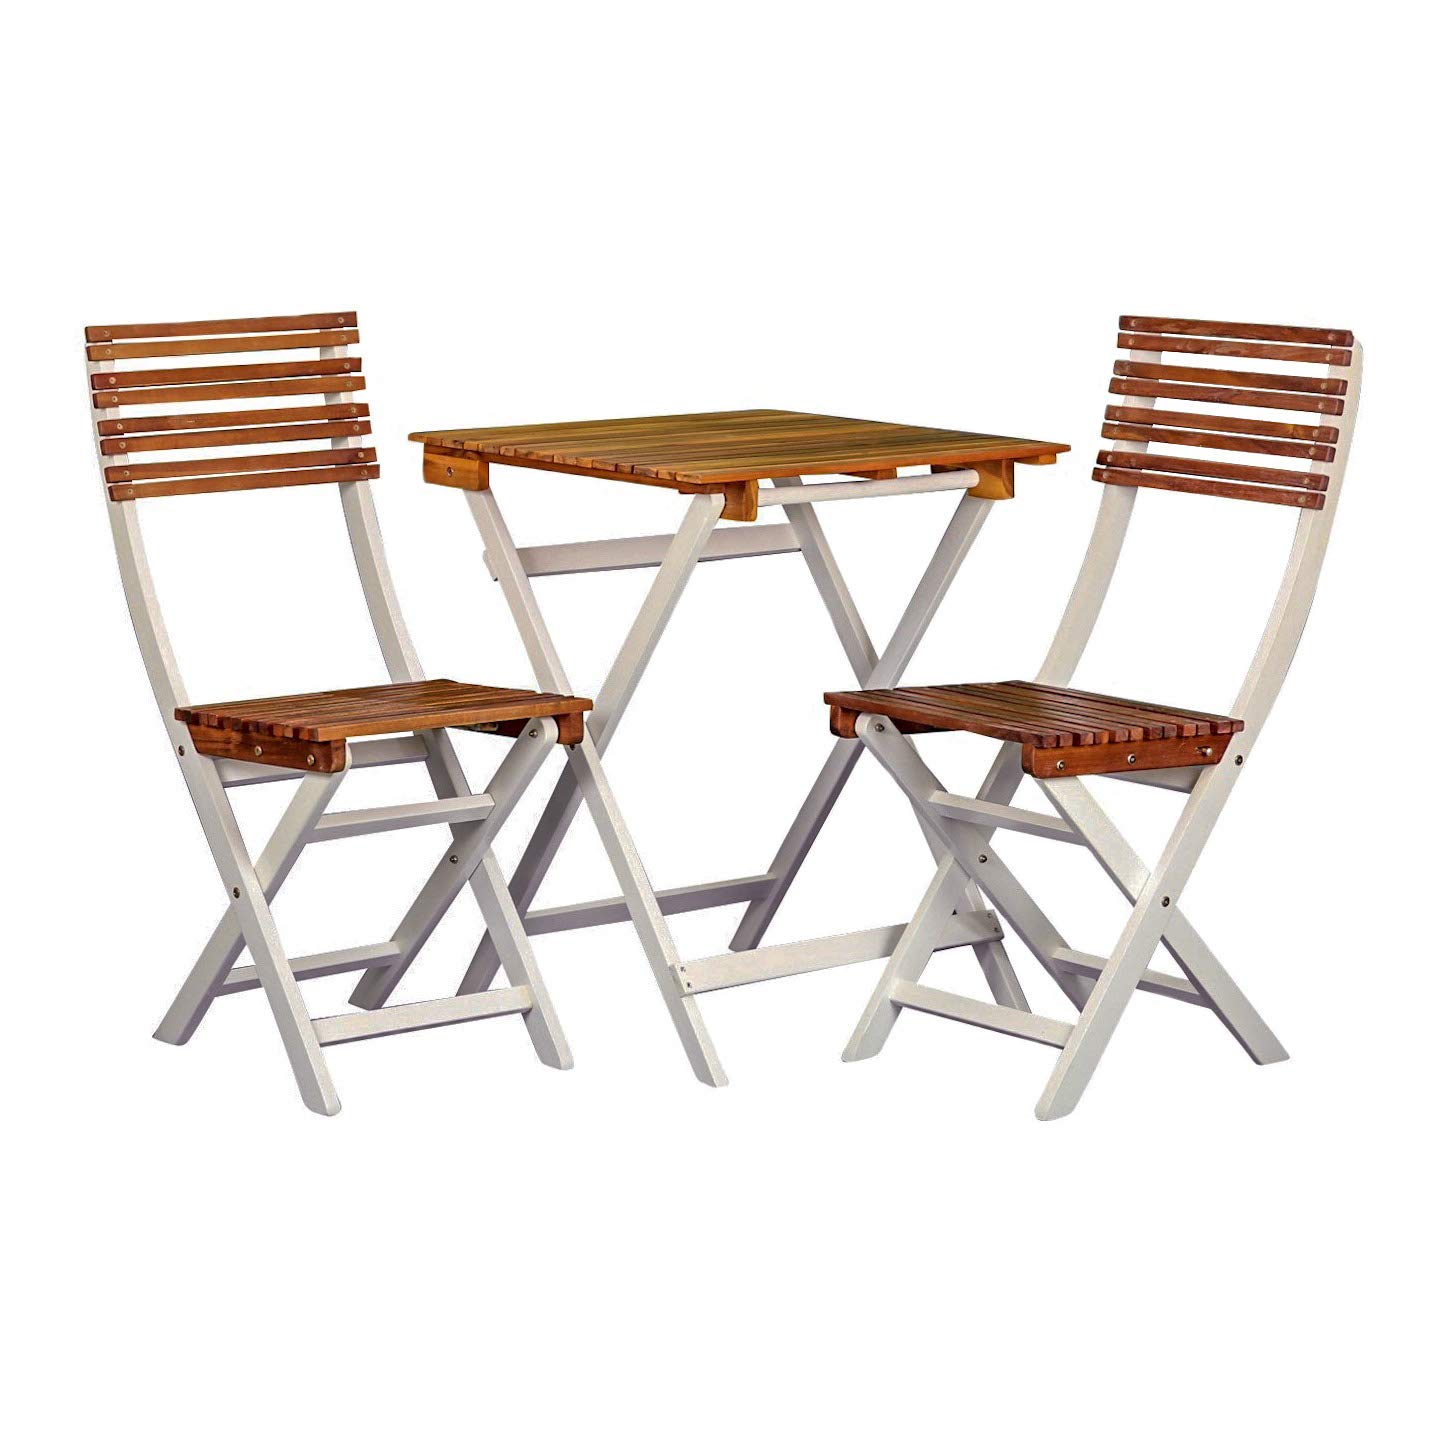 DTY Outdoor Living South Park 3-Piece Acacia Bistro Set, Natural Oil and White Finish